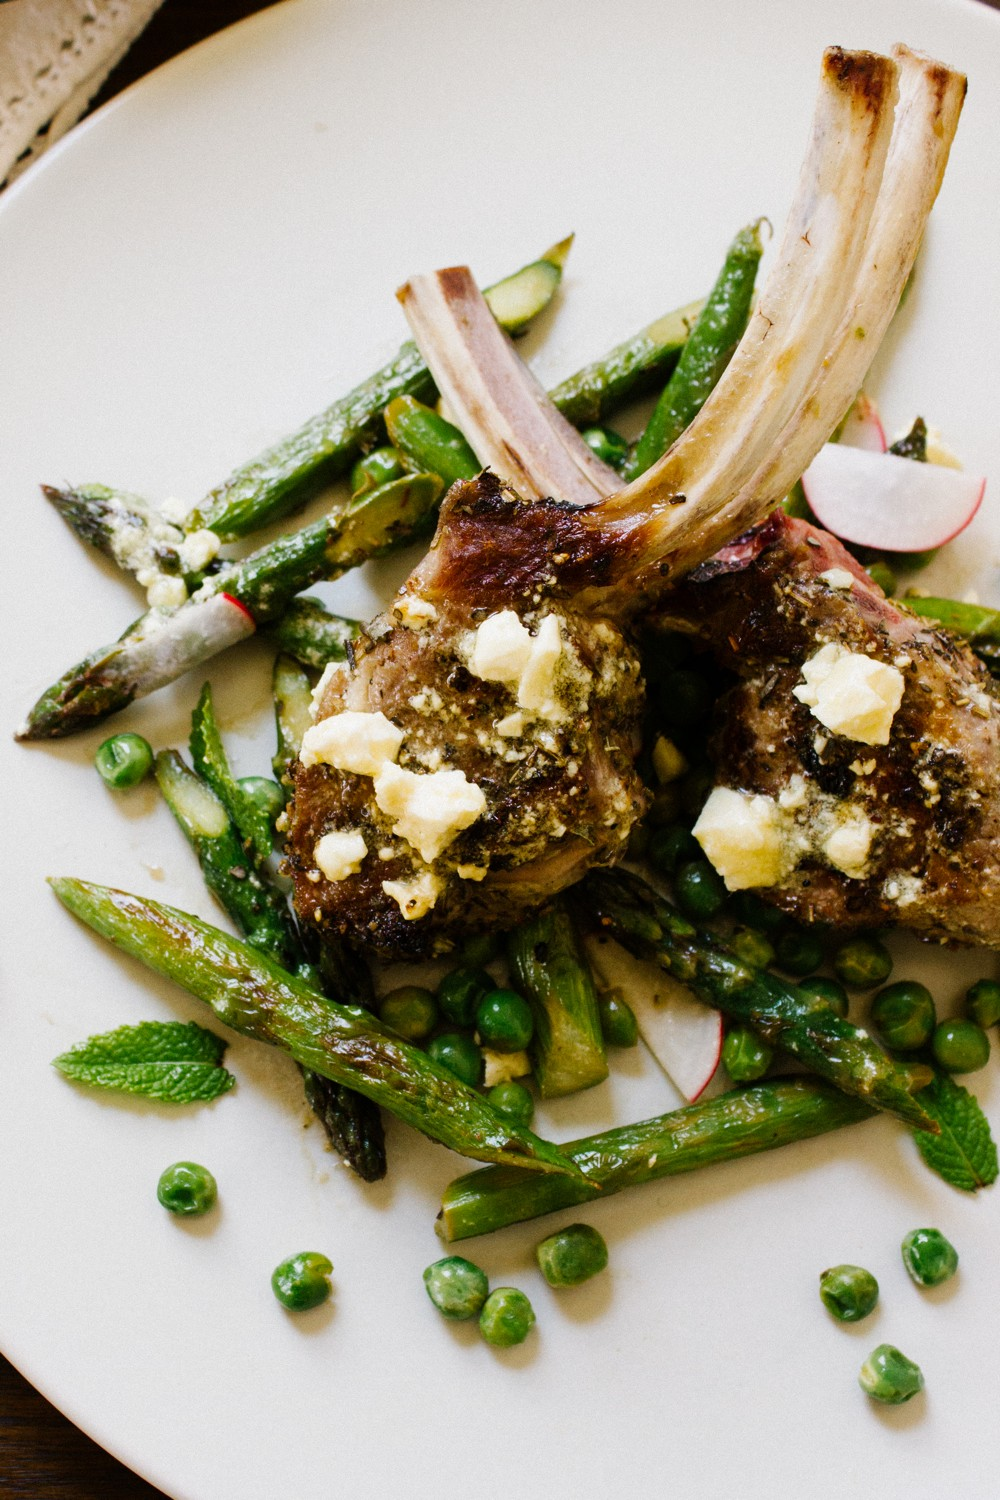 Lamb with Warm Feta Vinaigrette and Spring Vegetables